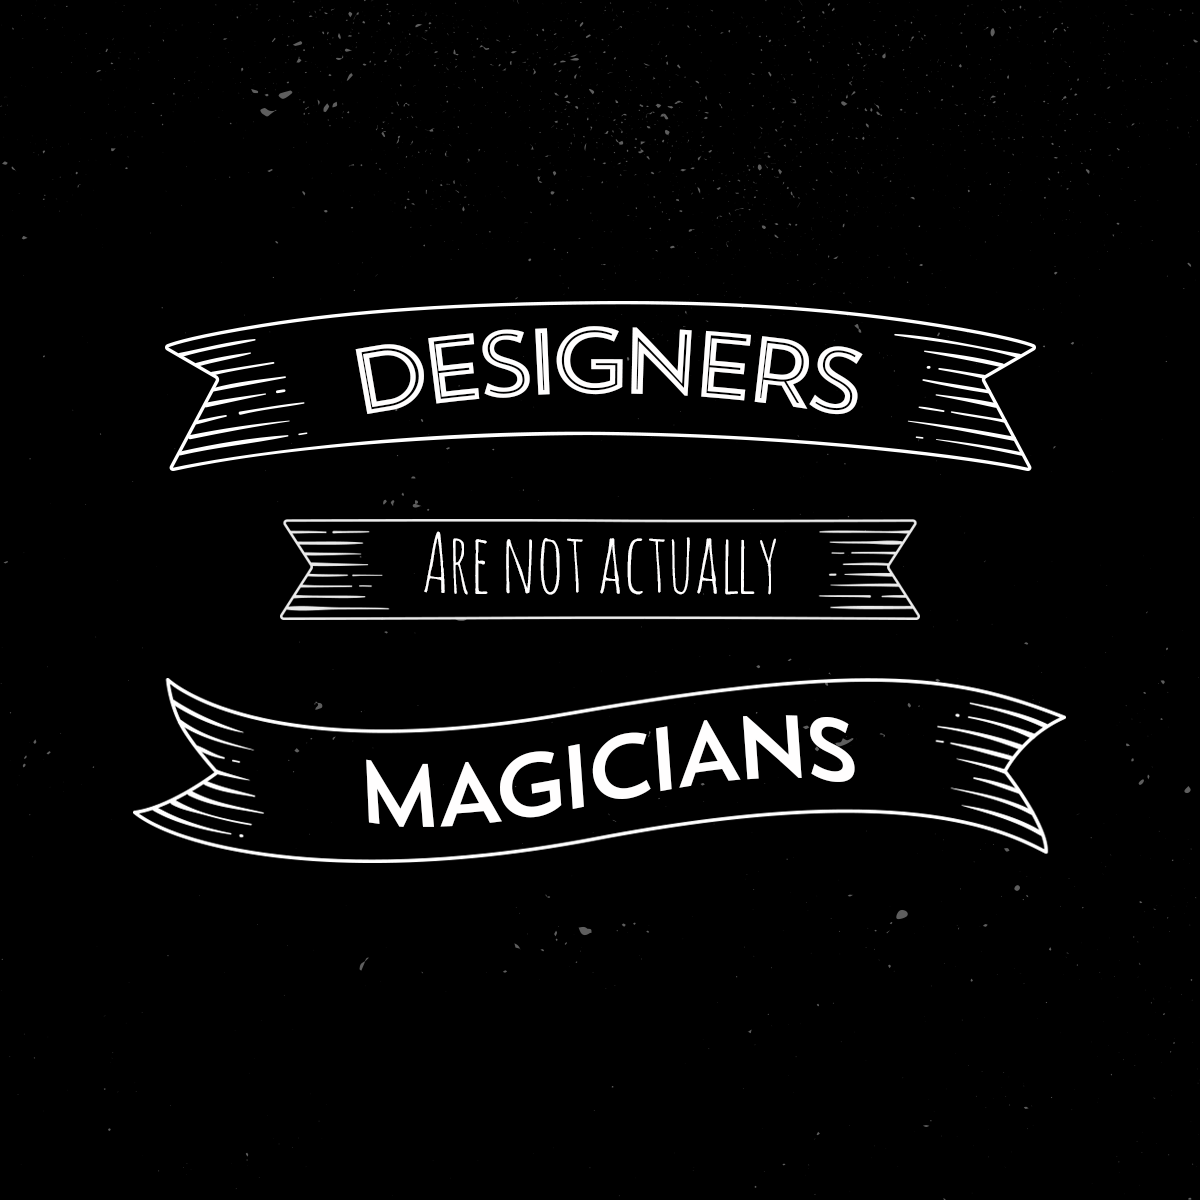 Designers are not actually magicians.